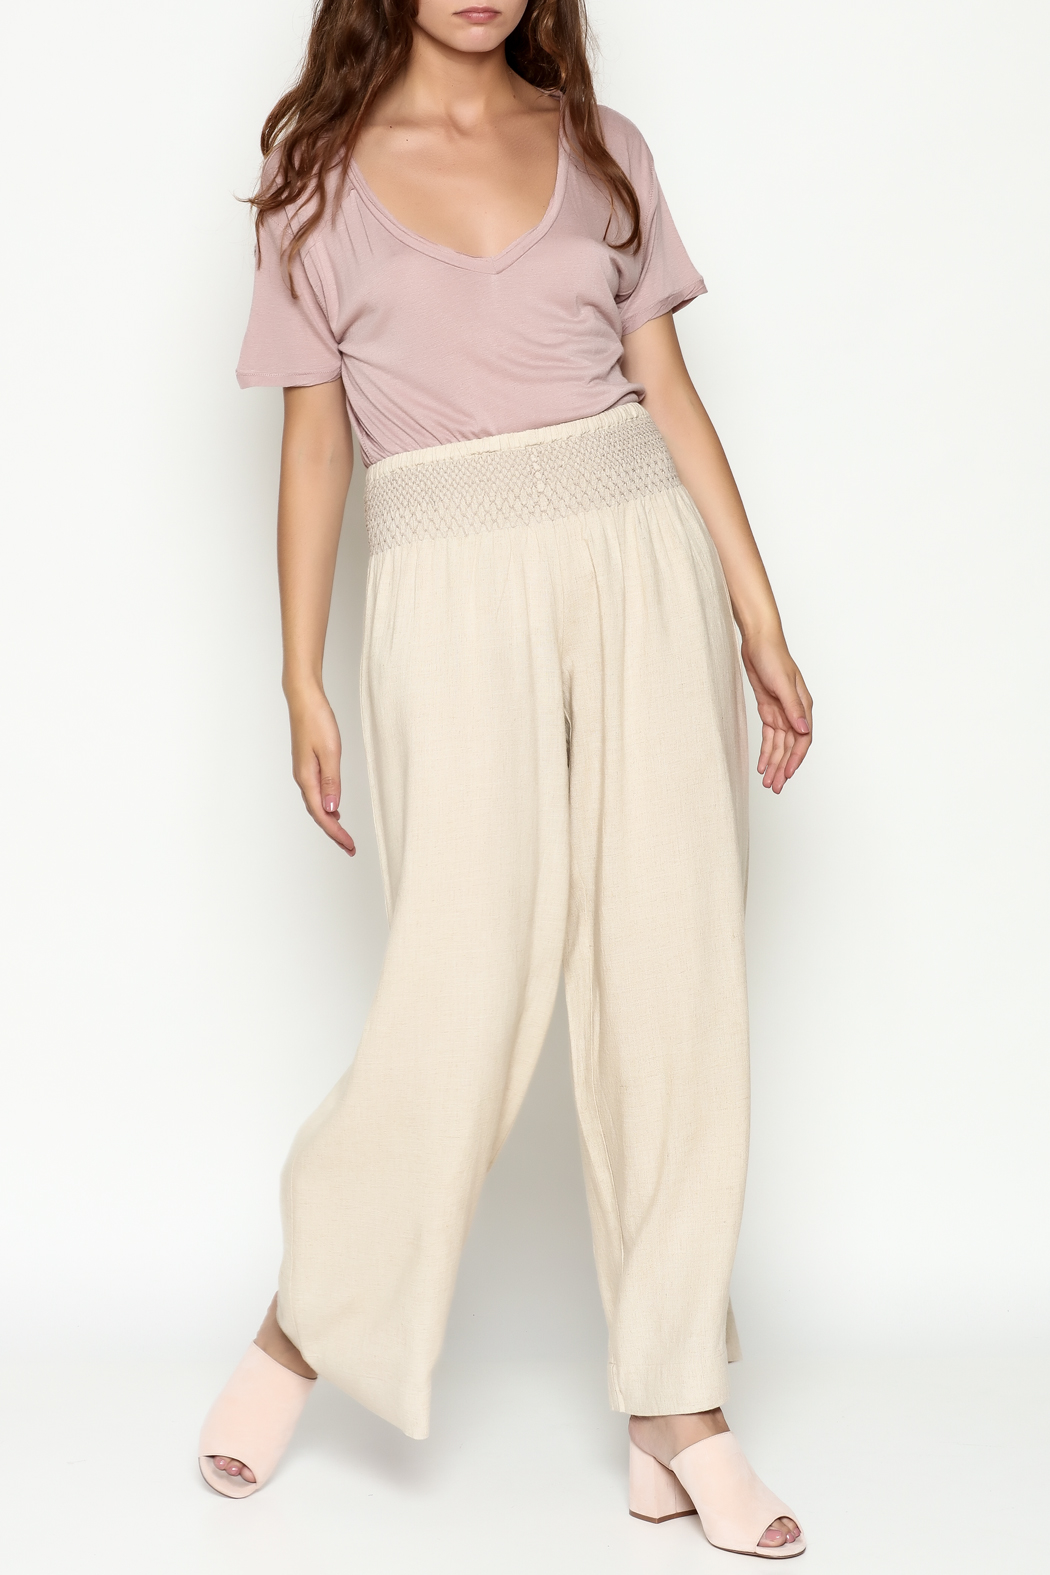 Ivy Jane Khaki Linen Pants - Side Cropped Image